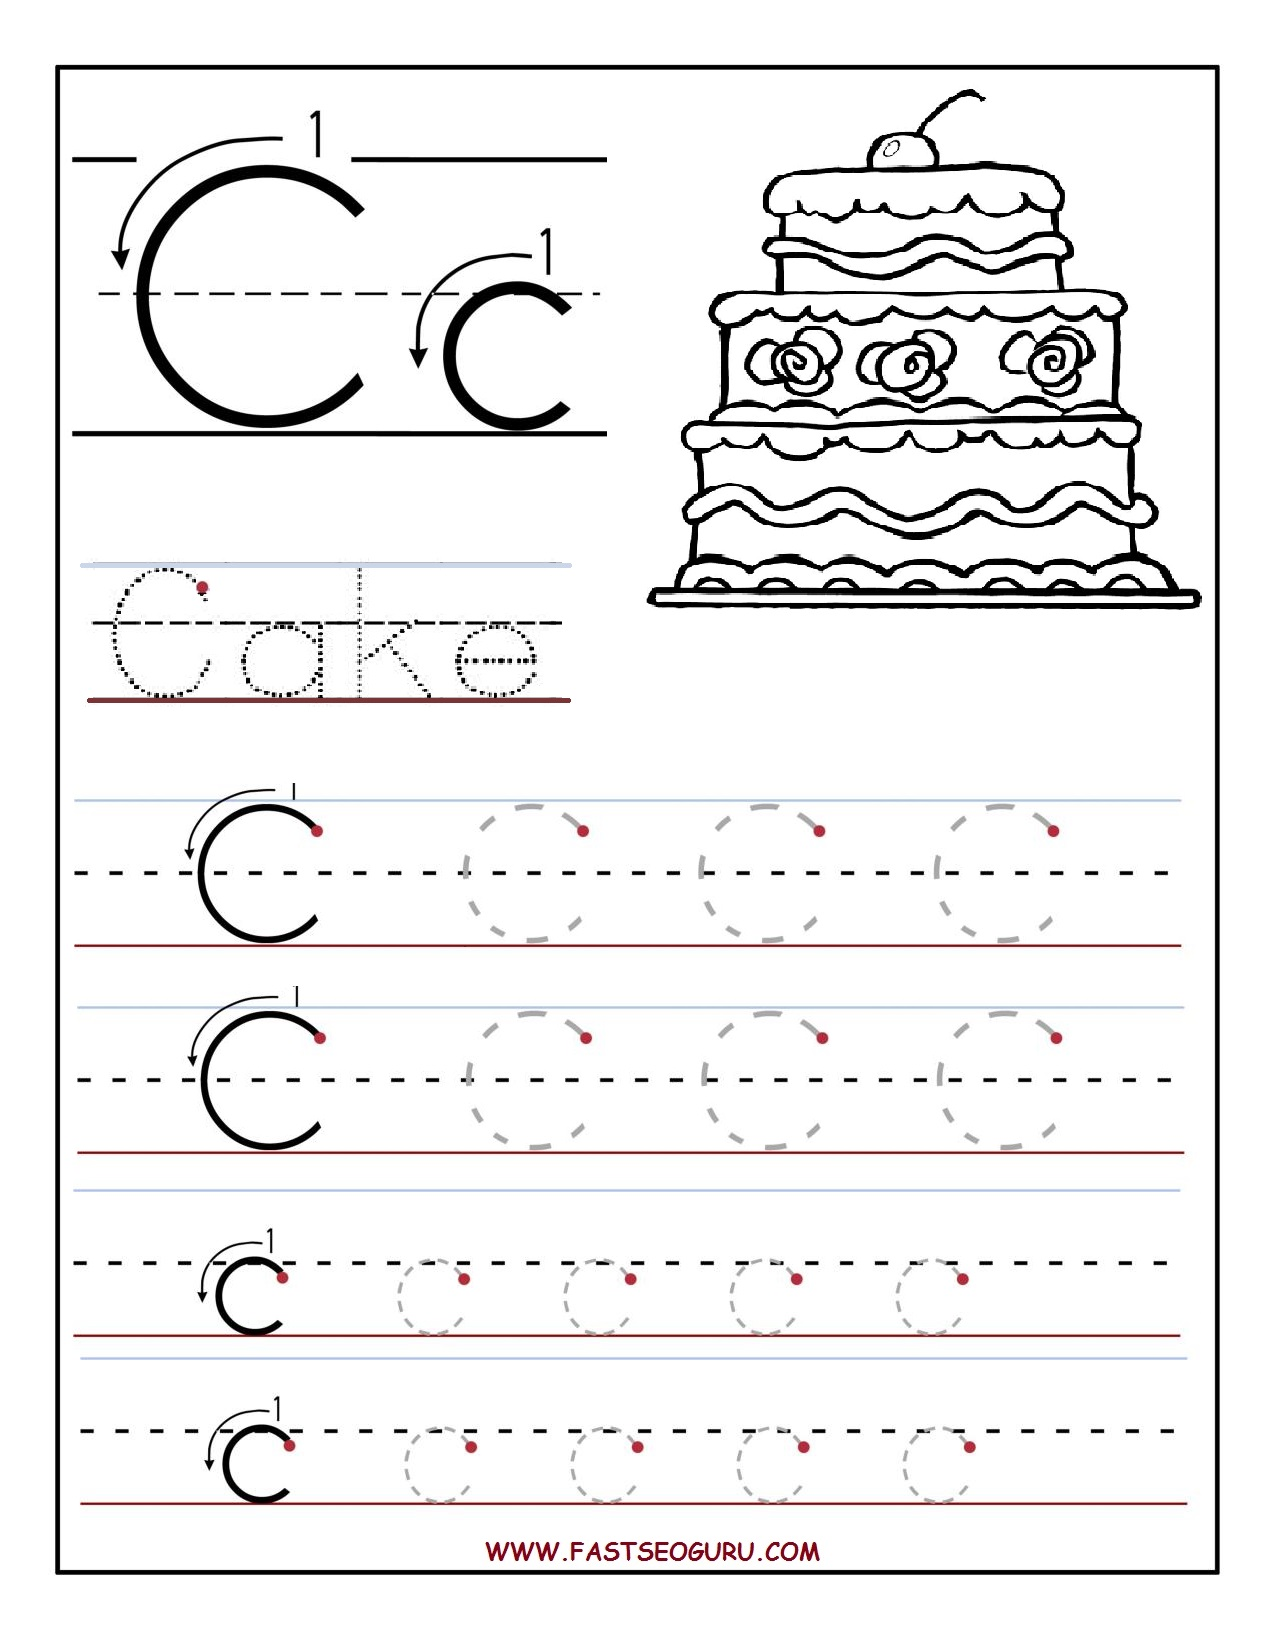 Free Printable Alphabet Tracing Worksheets For